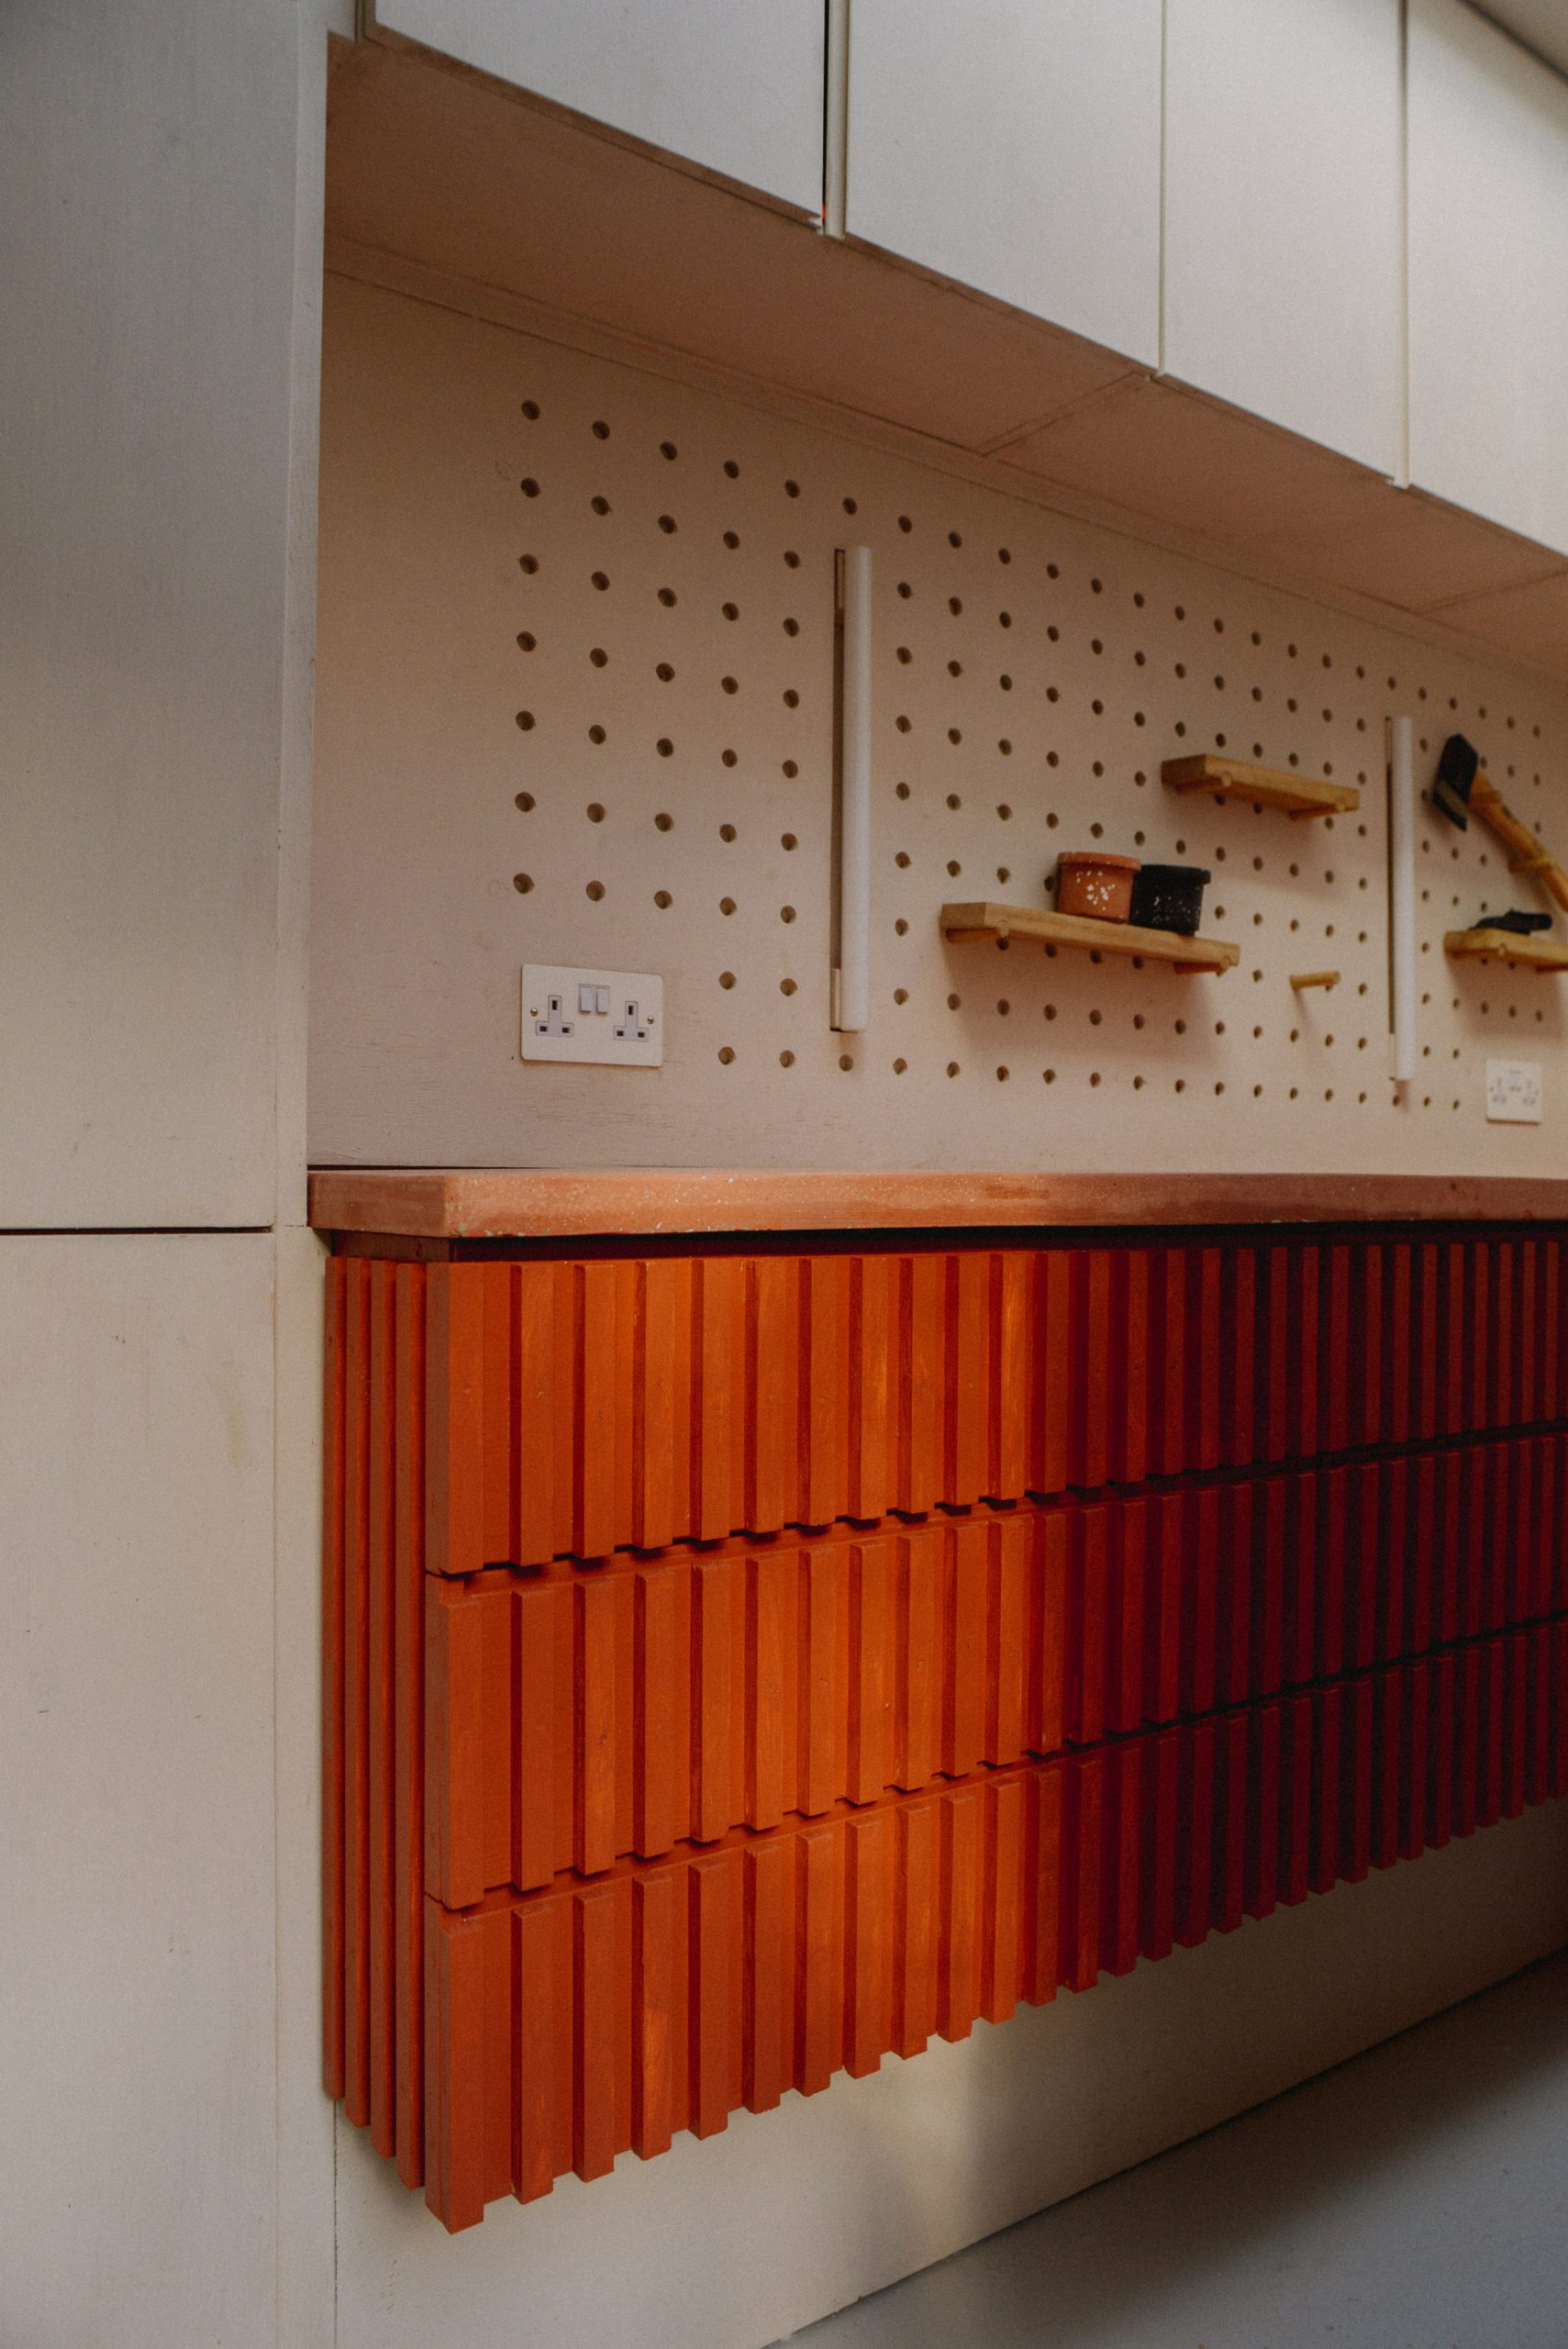 A workshop with a pegboard